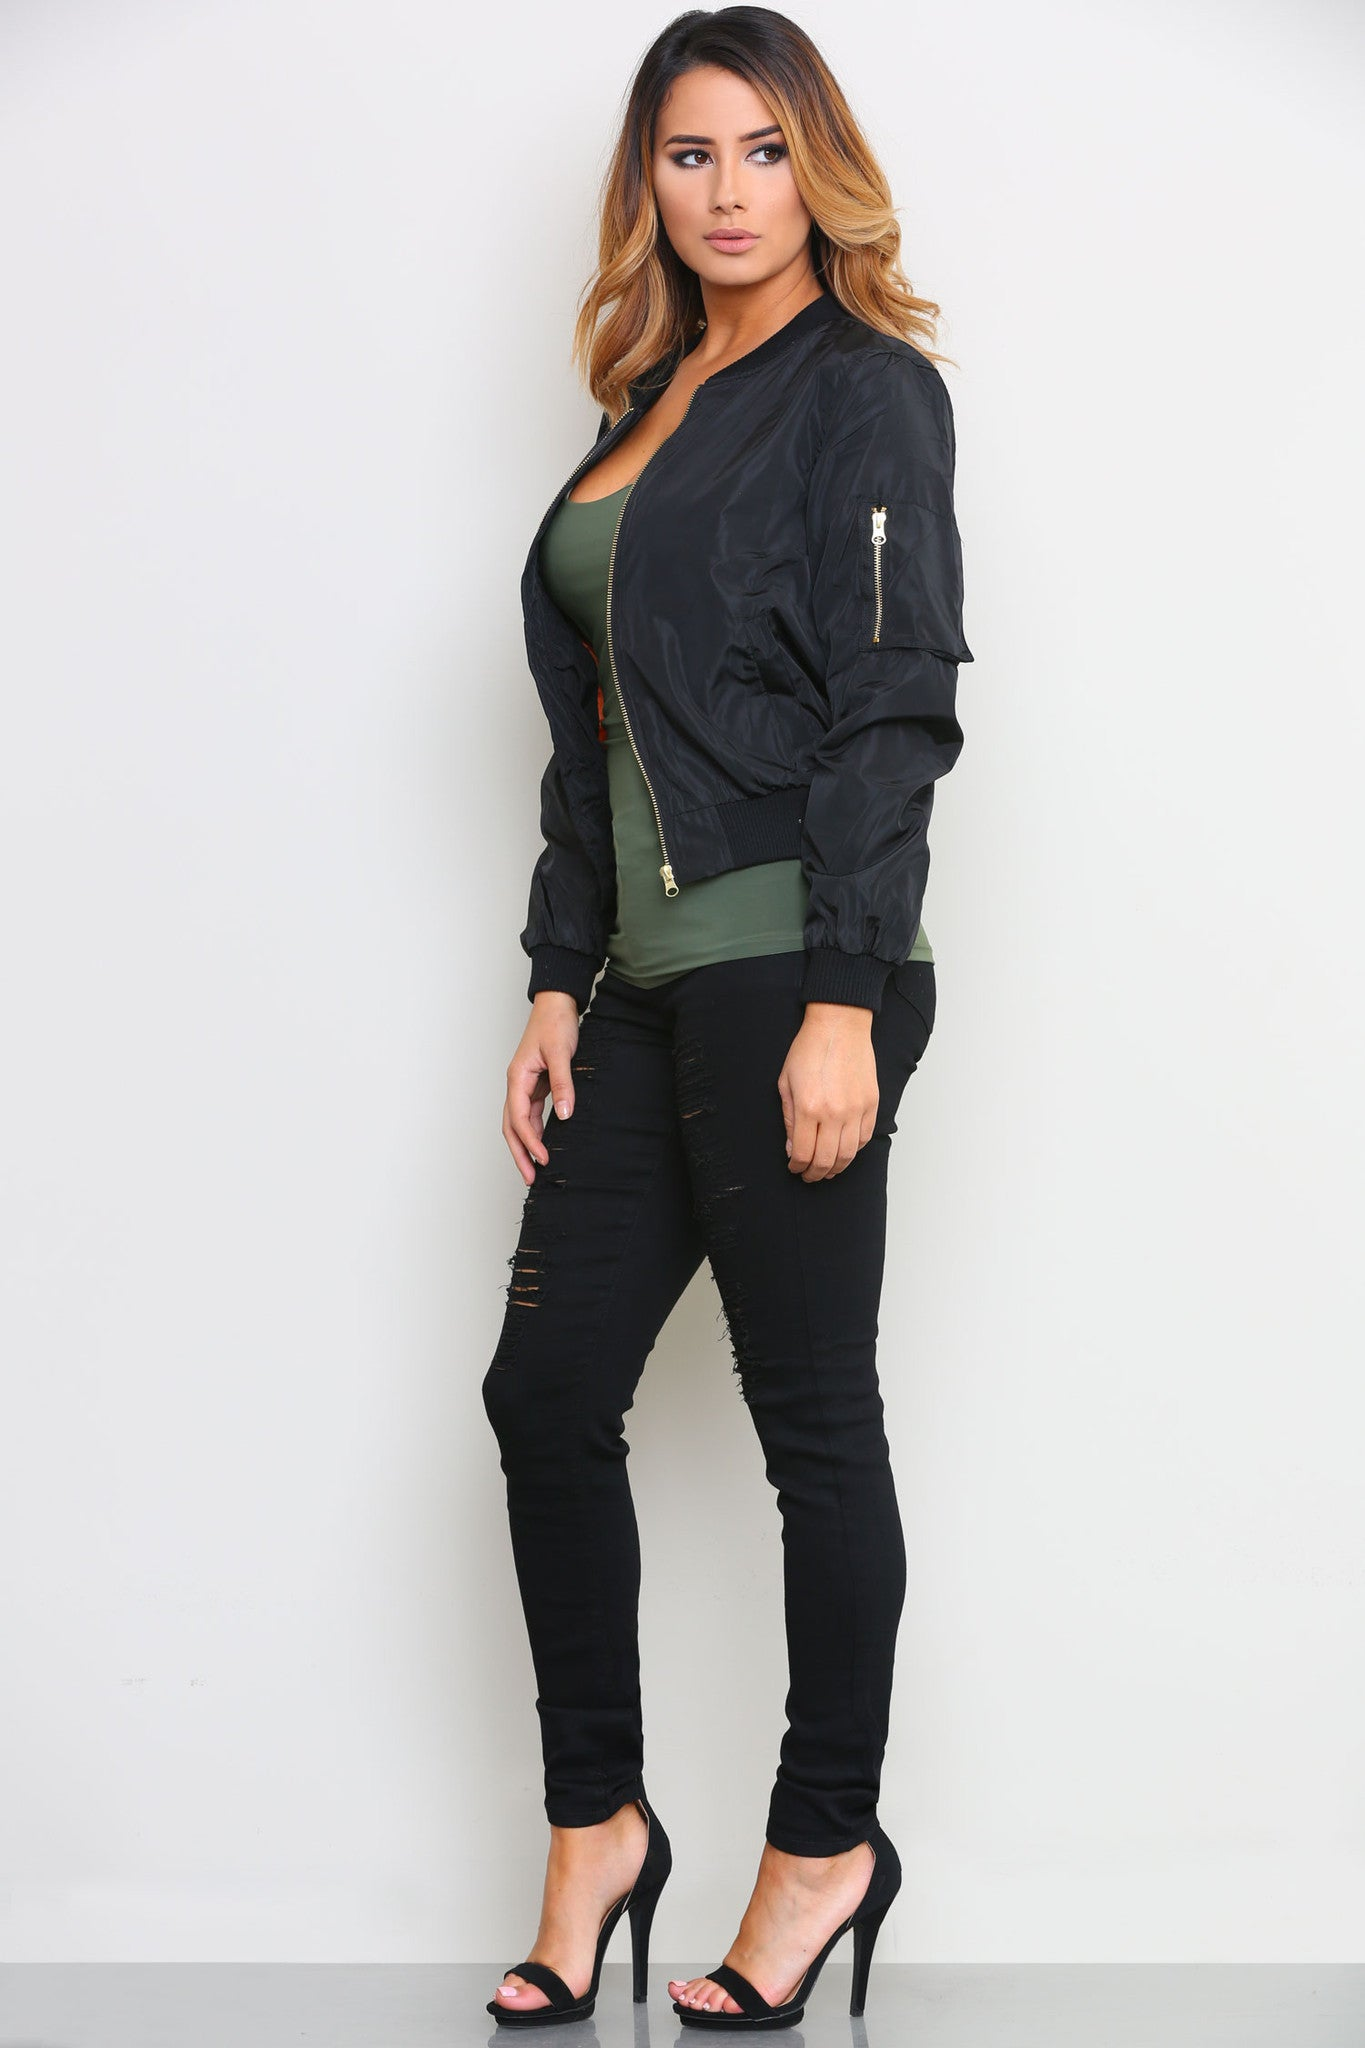 CHRISTINE BOMBER JACKET - Glam Envy - 1